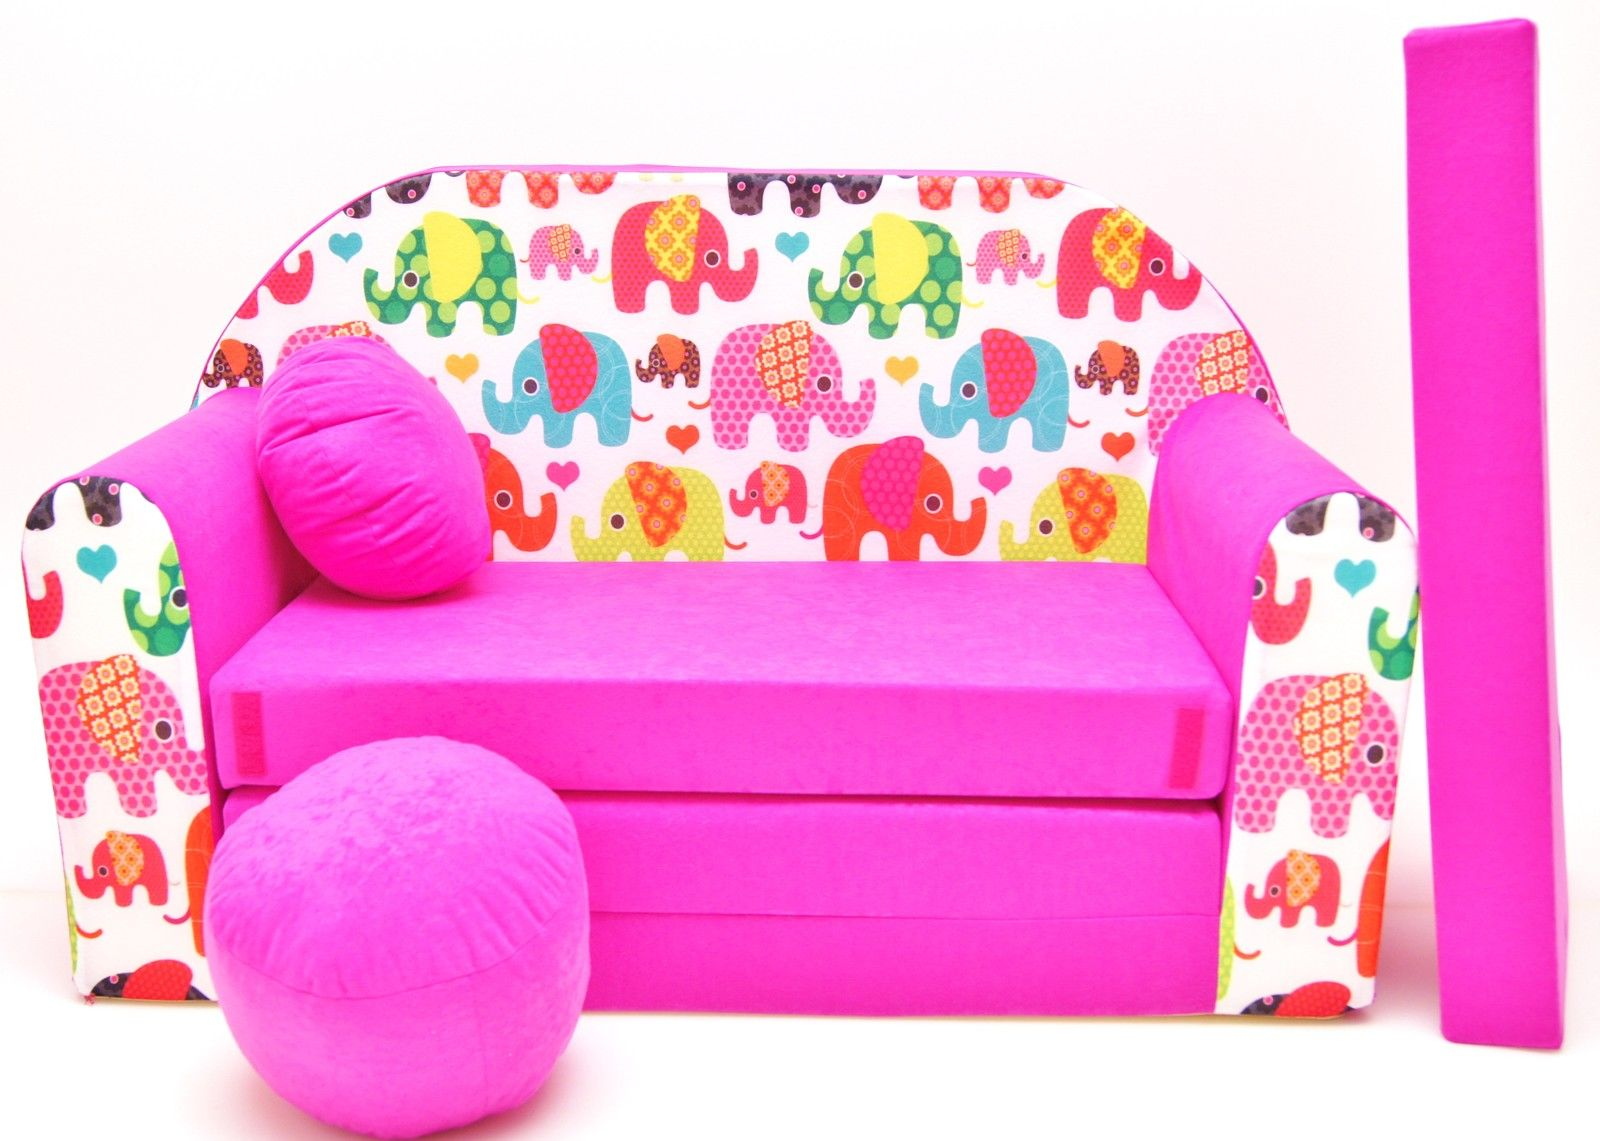 Kids Fold Out Couch.Childrens Sofa Bed Type W Fold Out Sofa Foam Bed For Children Free Pillow And Pouffe Wh9